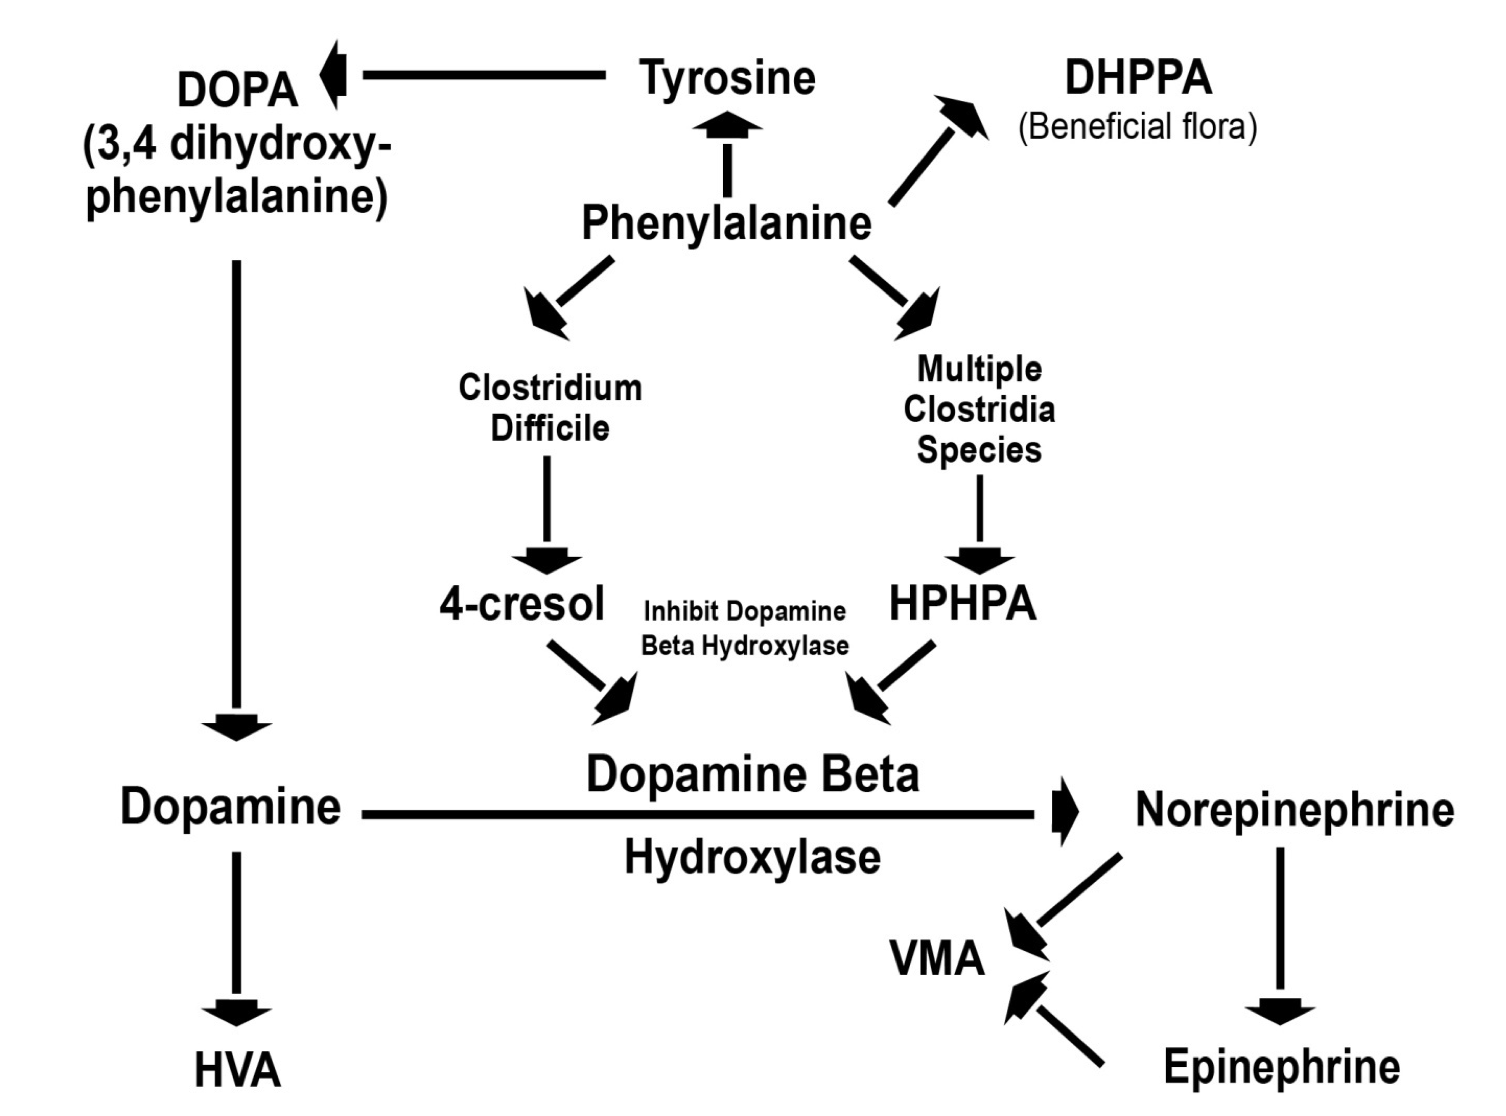 Figure 2. Effect of  Clostridia  metabolites on human catecholamine metabolism. DHPPA, 4-cresol, HPHPA, HVA, and VMA are all measured in The Great Plains Laboratory organic acid test.